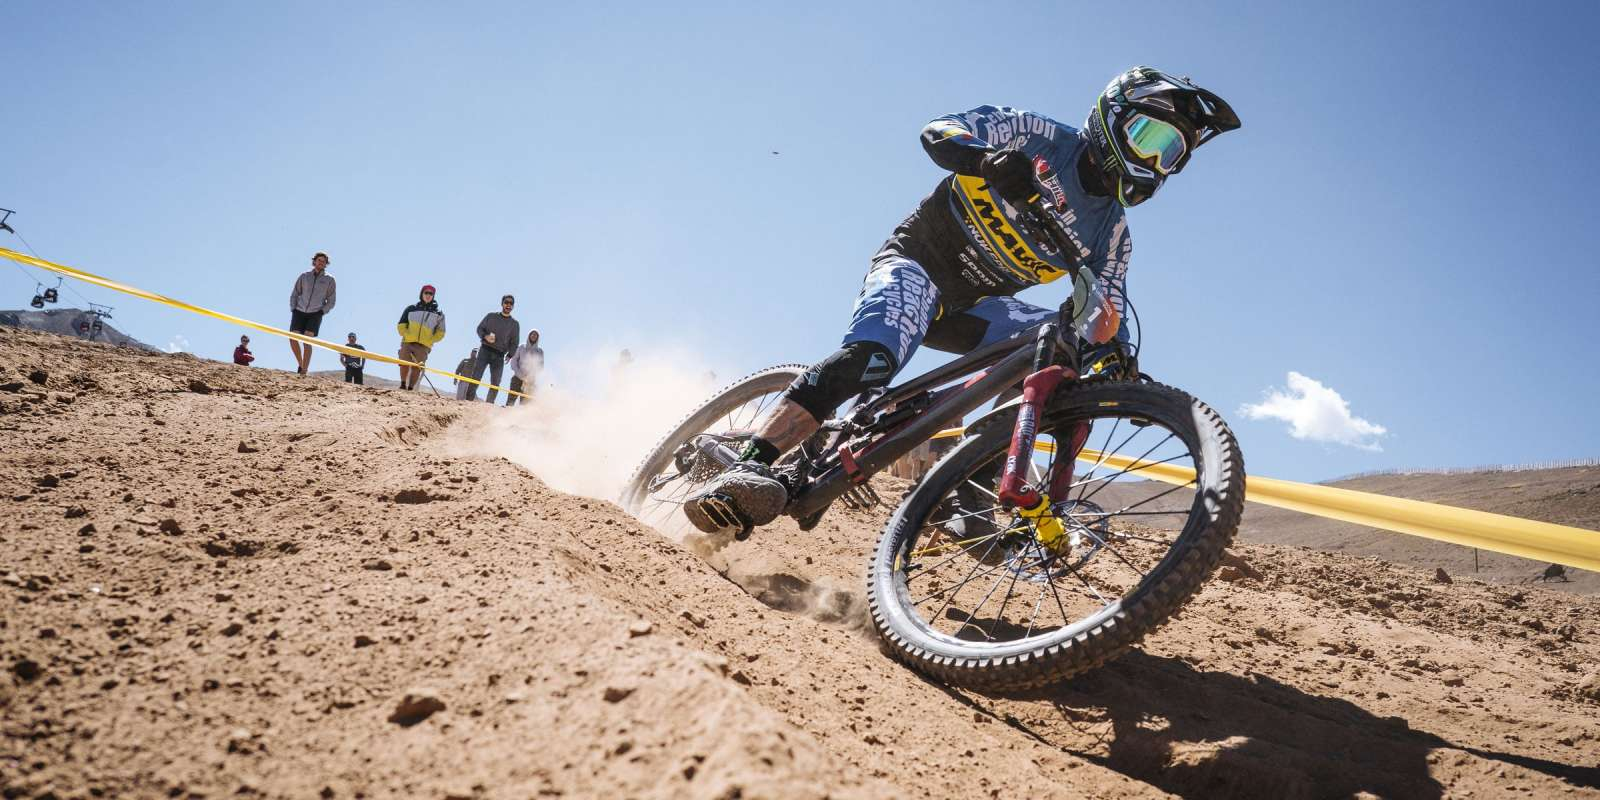 Images from Enduro World Series in Lo Barnechea, Chile